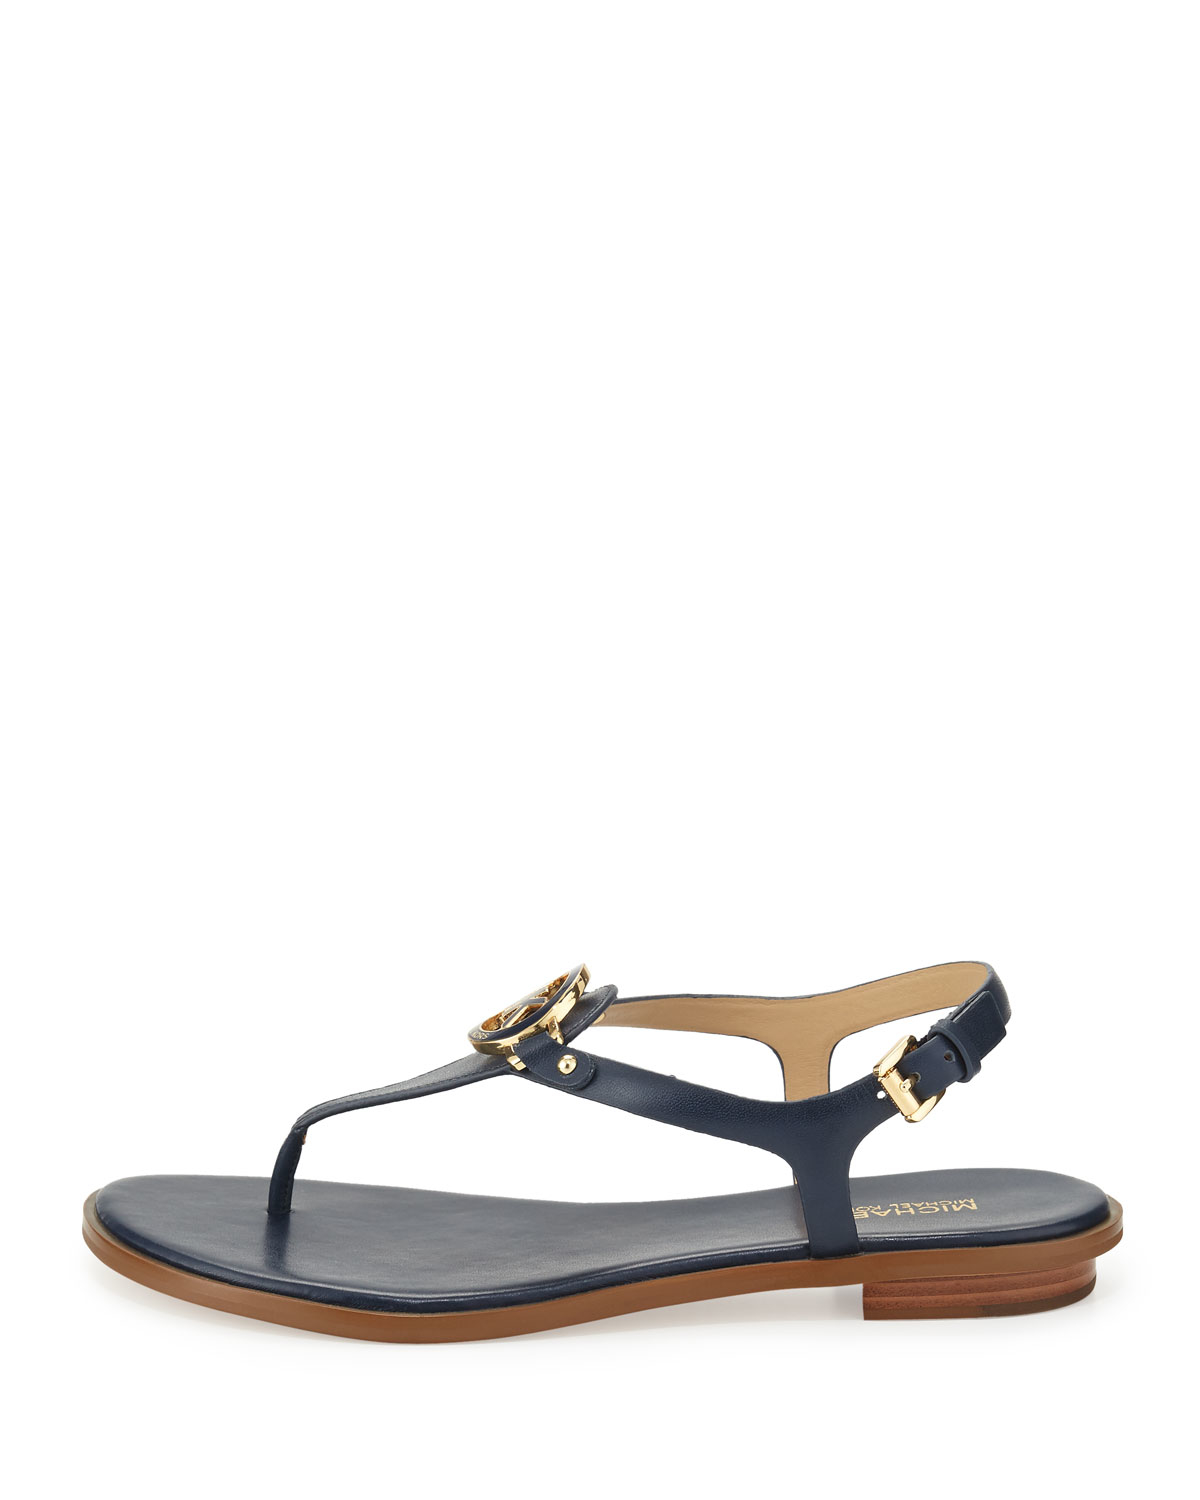 Michael michael kors Lee Leather Sandals in Blue   Lyst